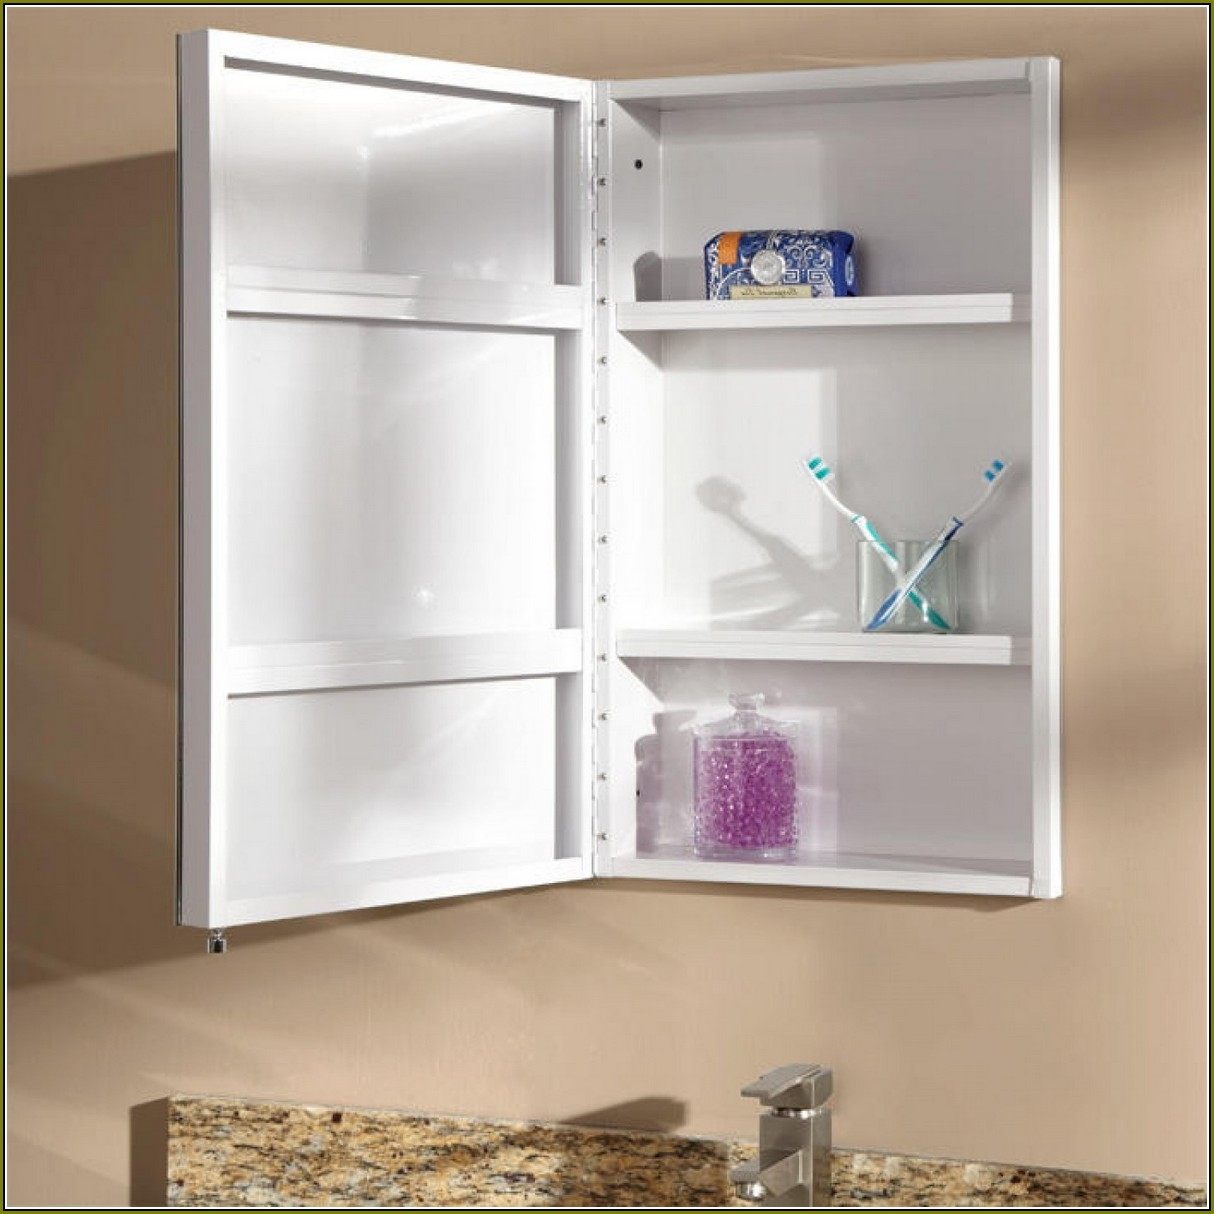 Recessed Bathroom Cabinet Without Mirror